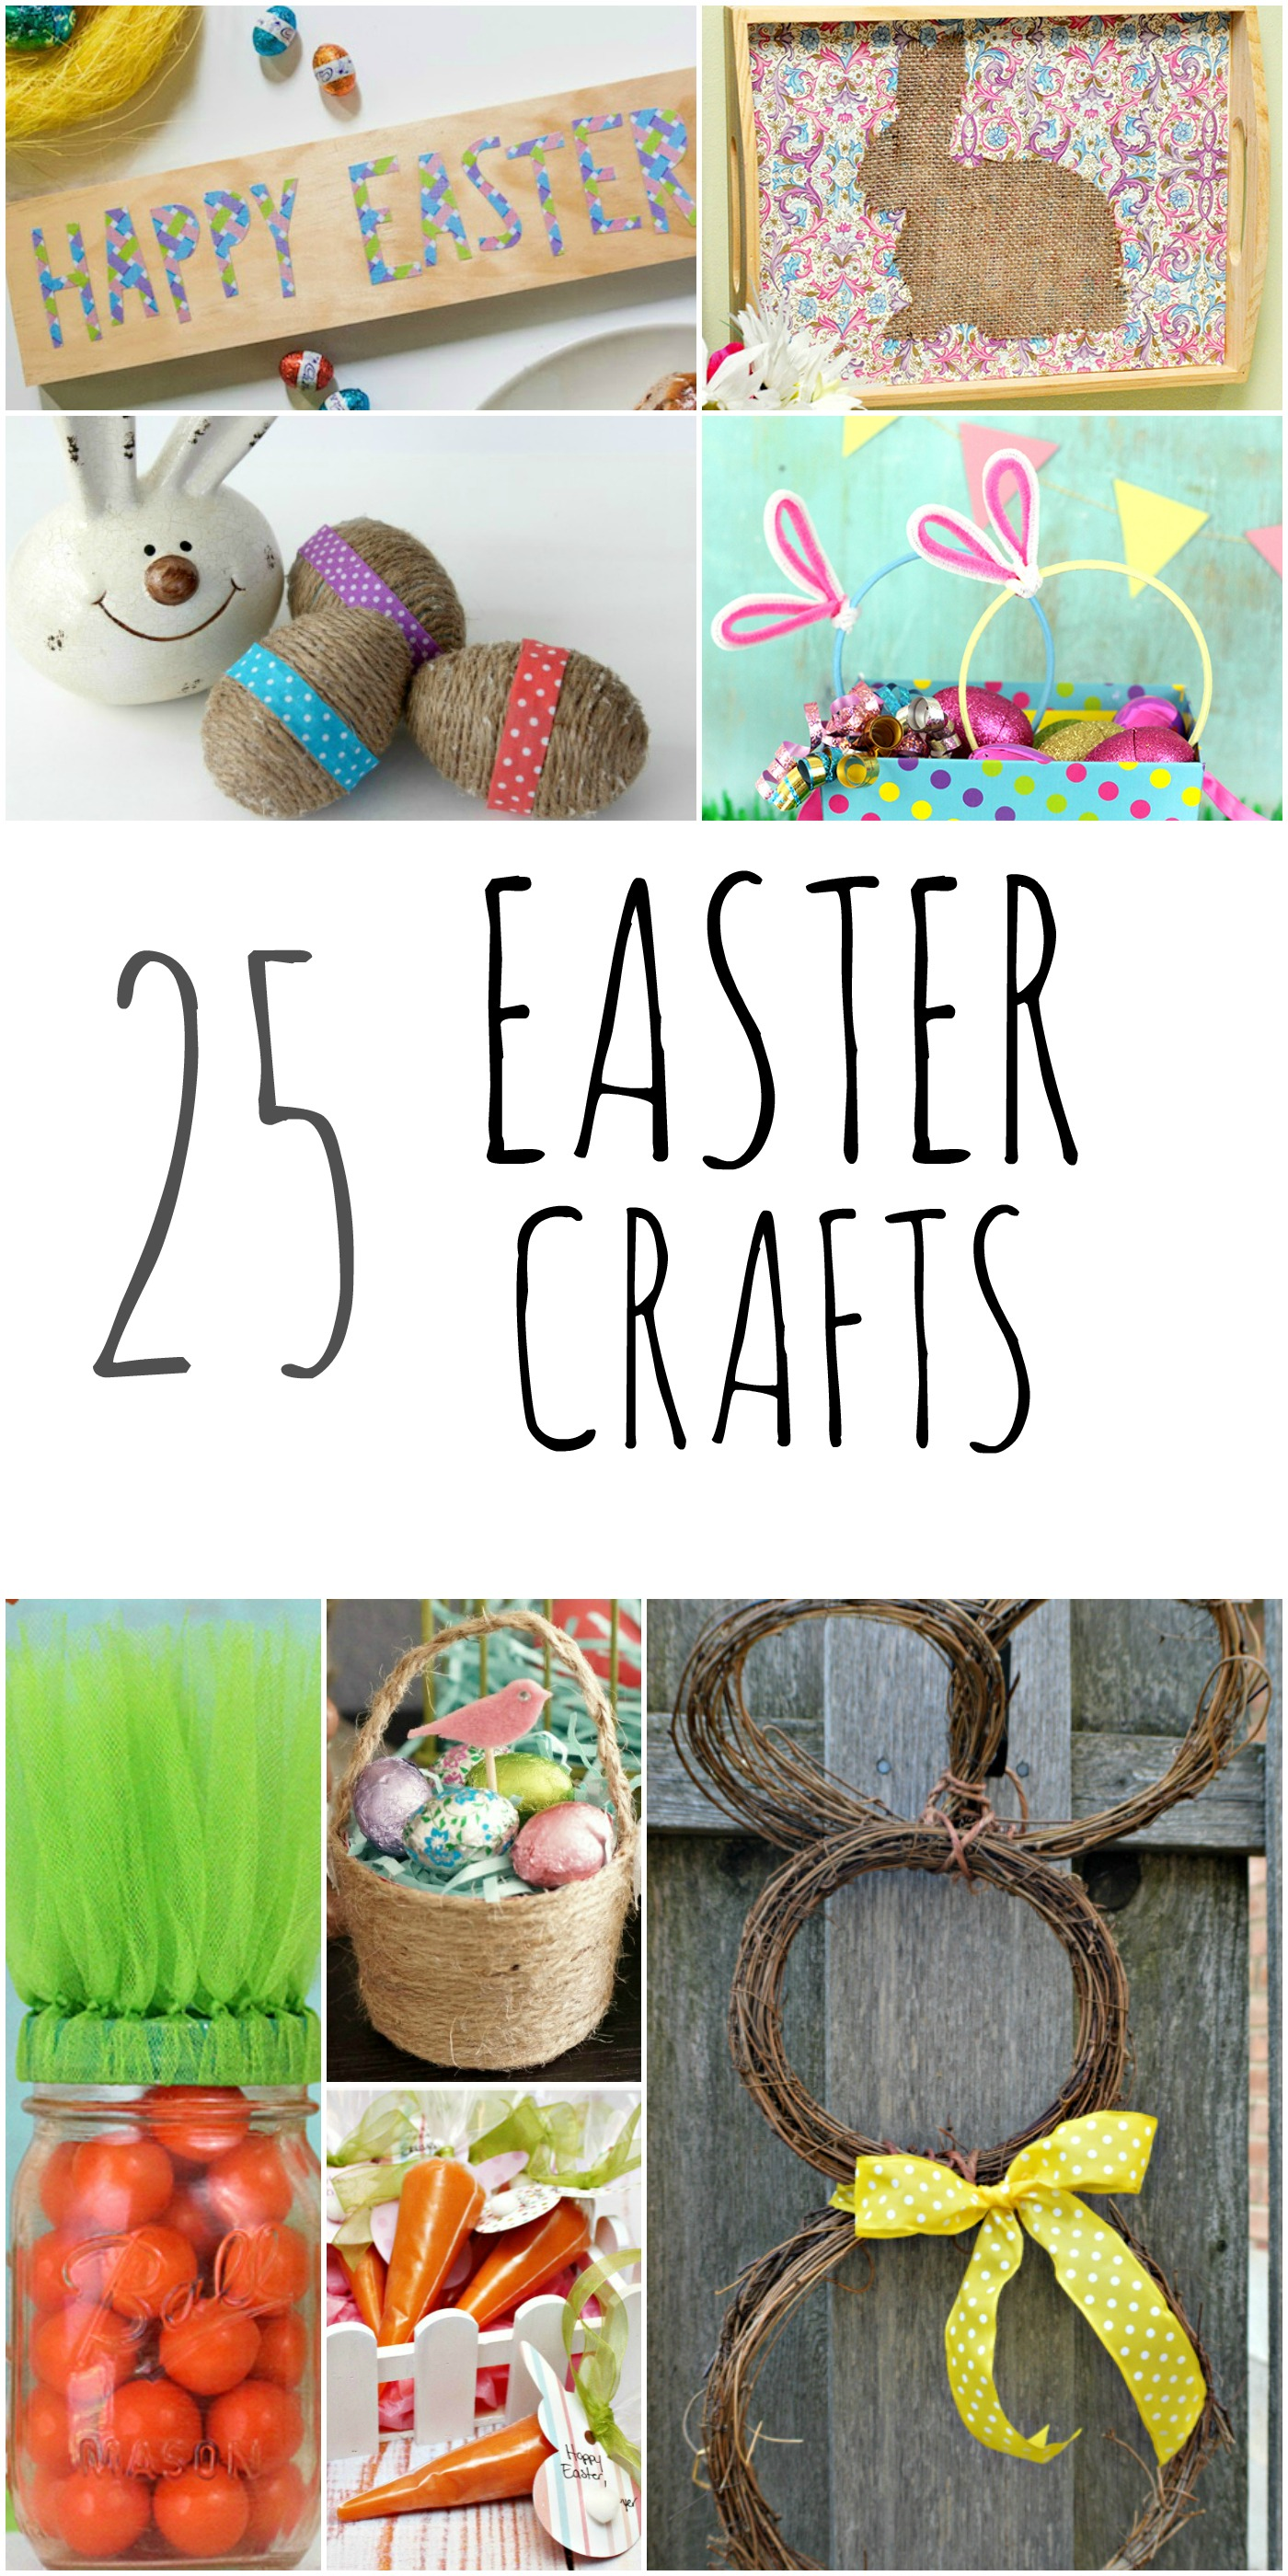 Best 25+ Diy easter decorations ideas on Pinterest ... |Easter Diy Projects Pinterest